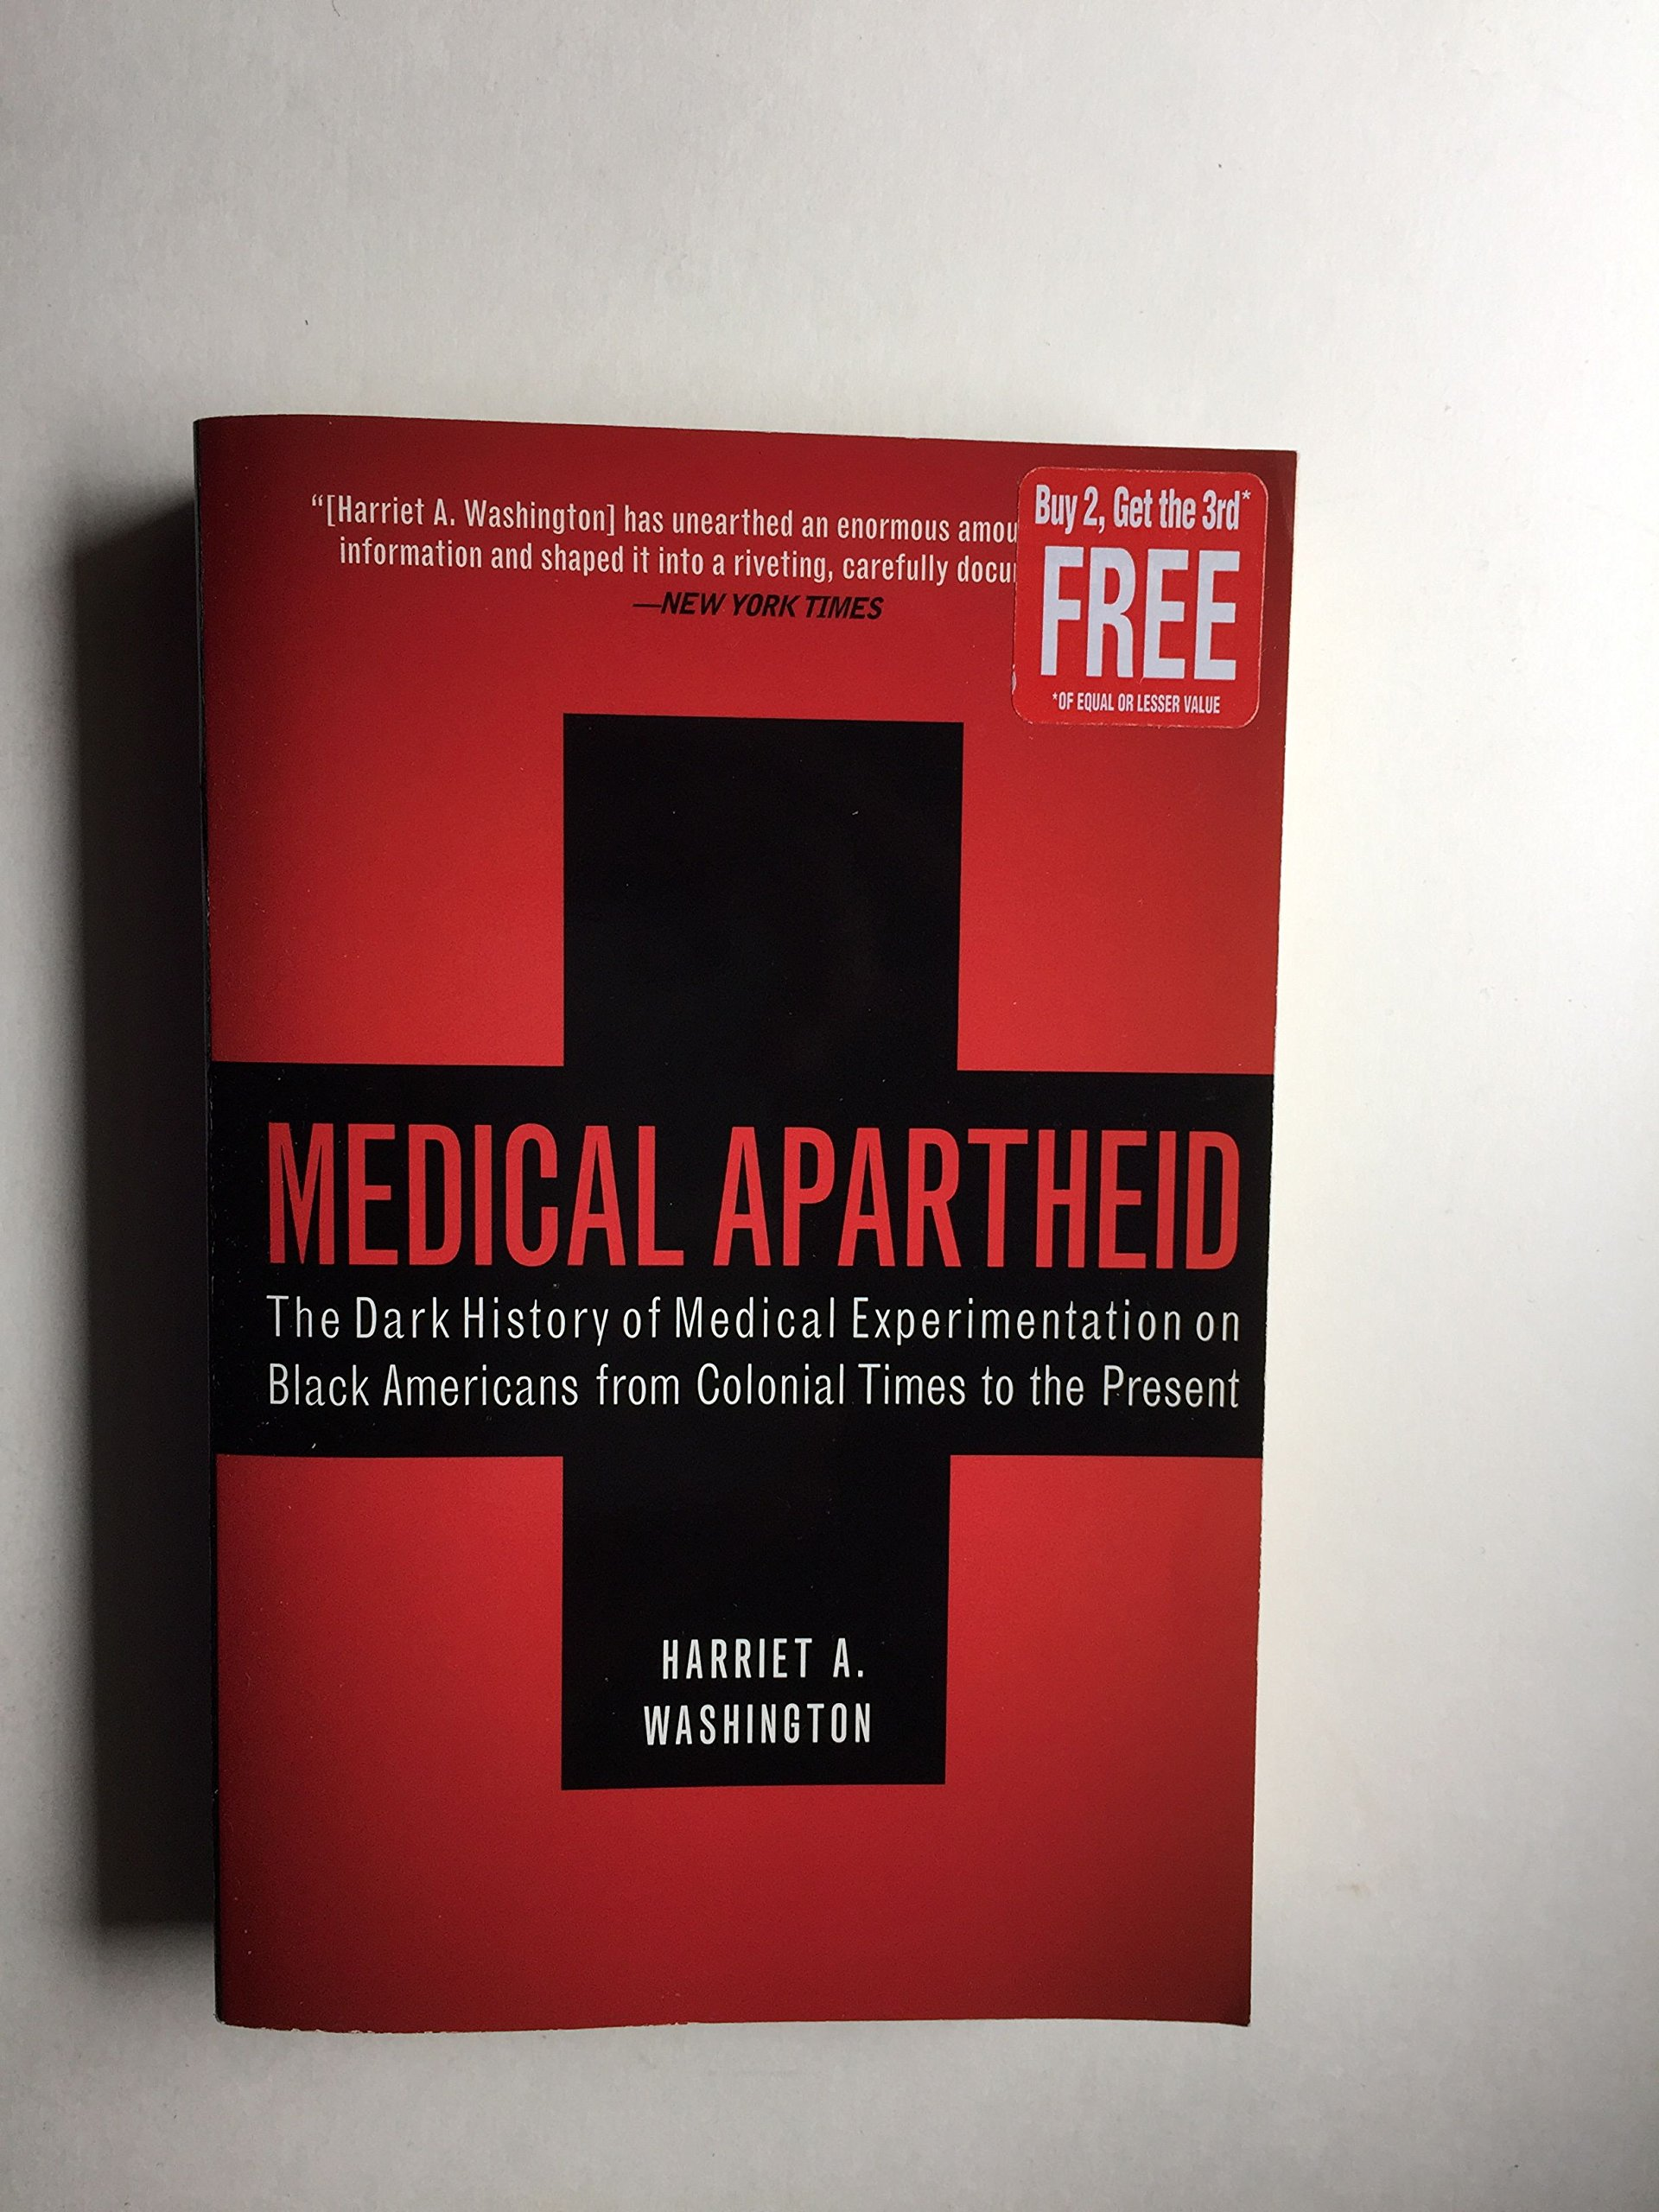 Download Medical Apartheid - The Dark History Of Medical Experimentation On Black Americans From Colonial Times To The Present ebook